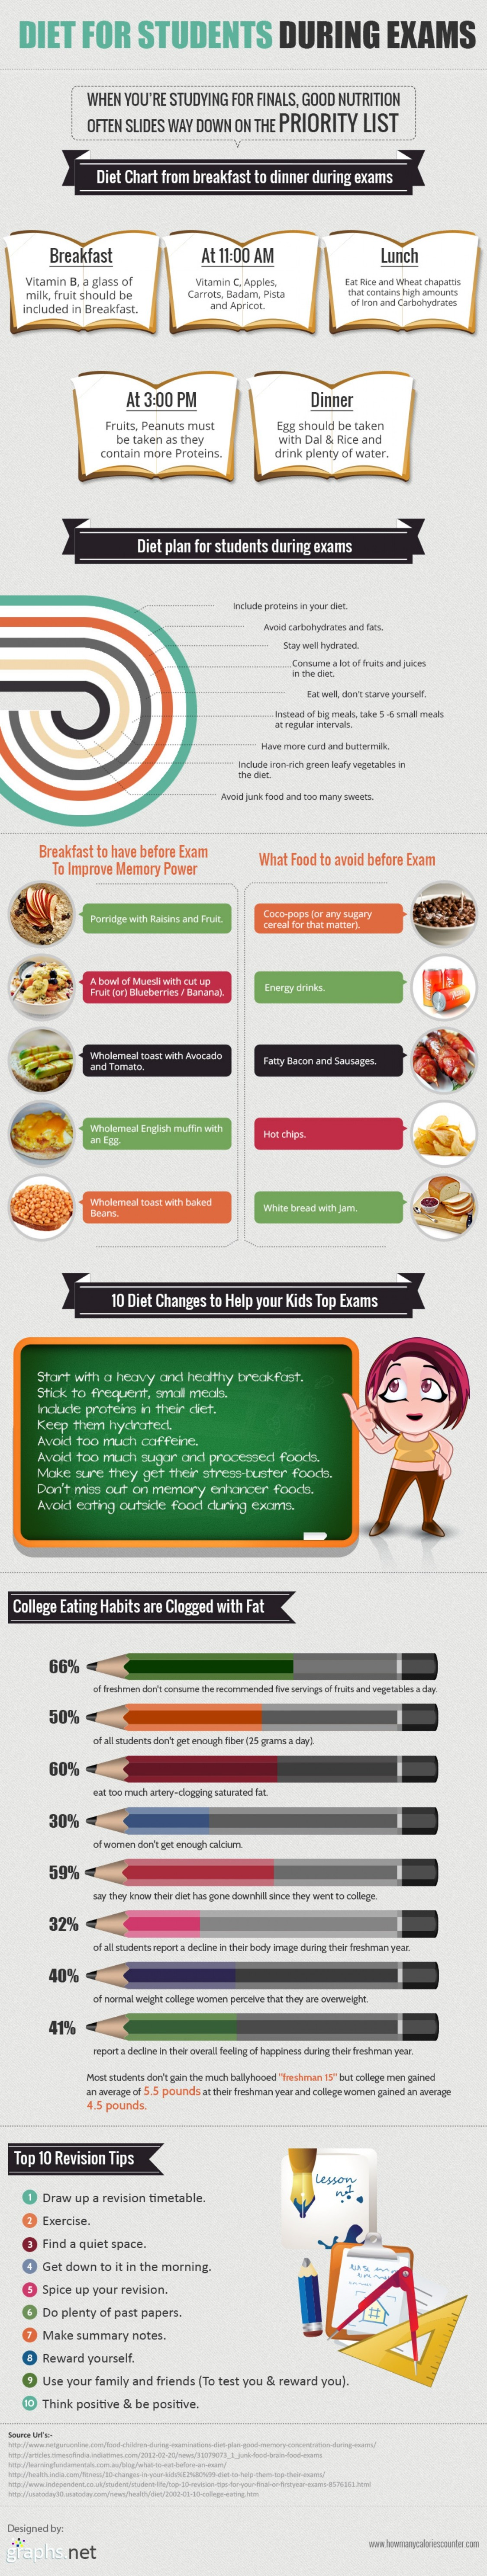 3. Diet for students during Exams